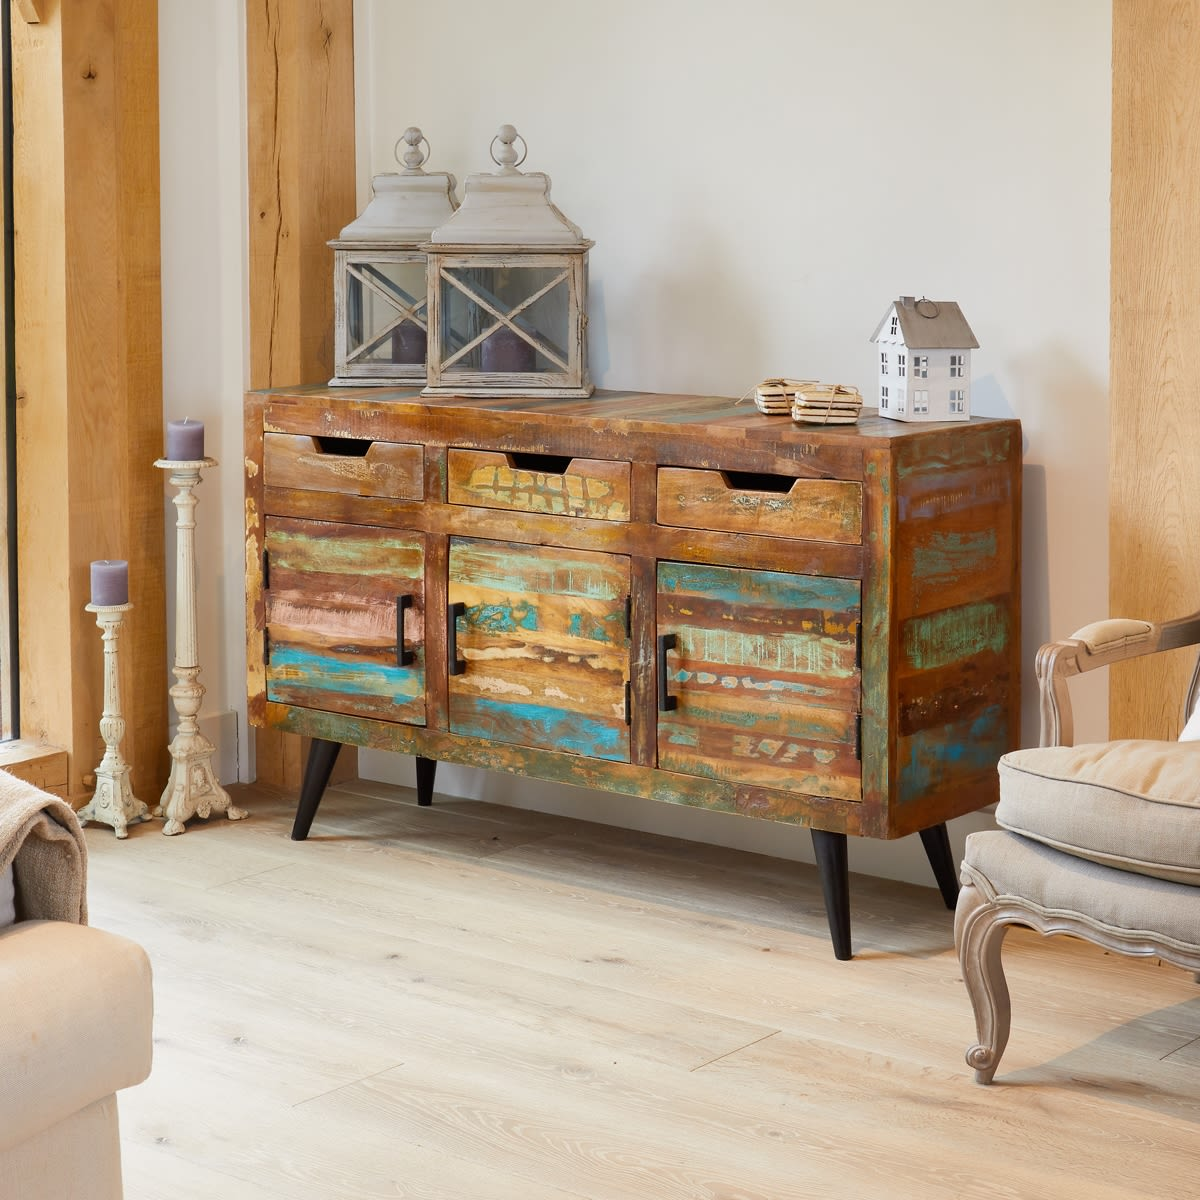 Stand out sideboards